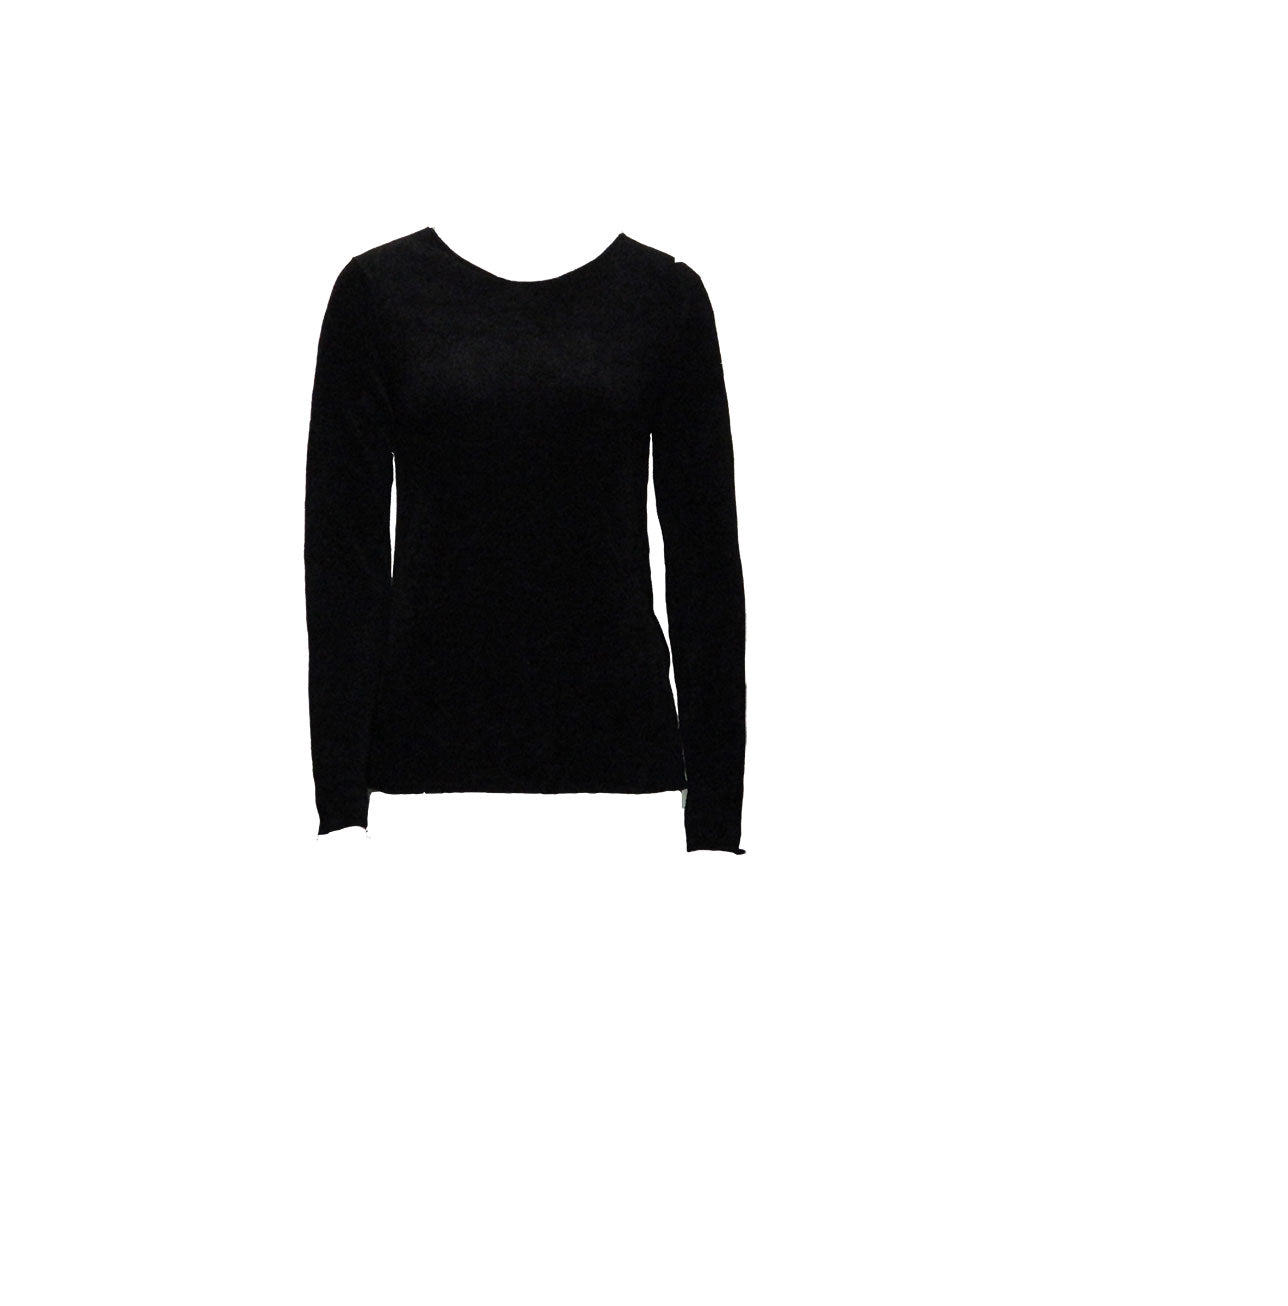 LONG SLEEVE SWEATER - COMME des GARCONS